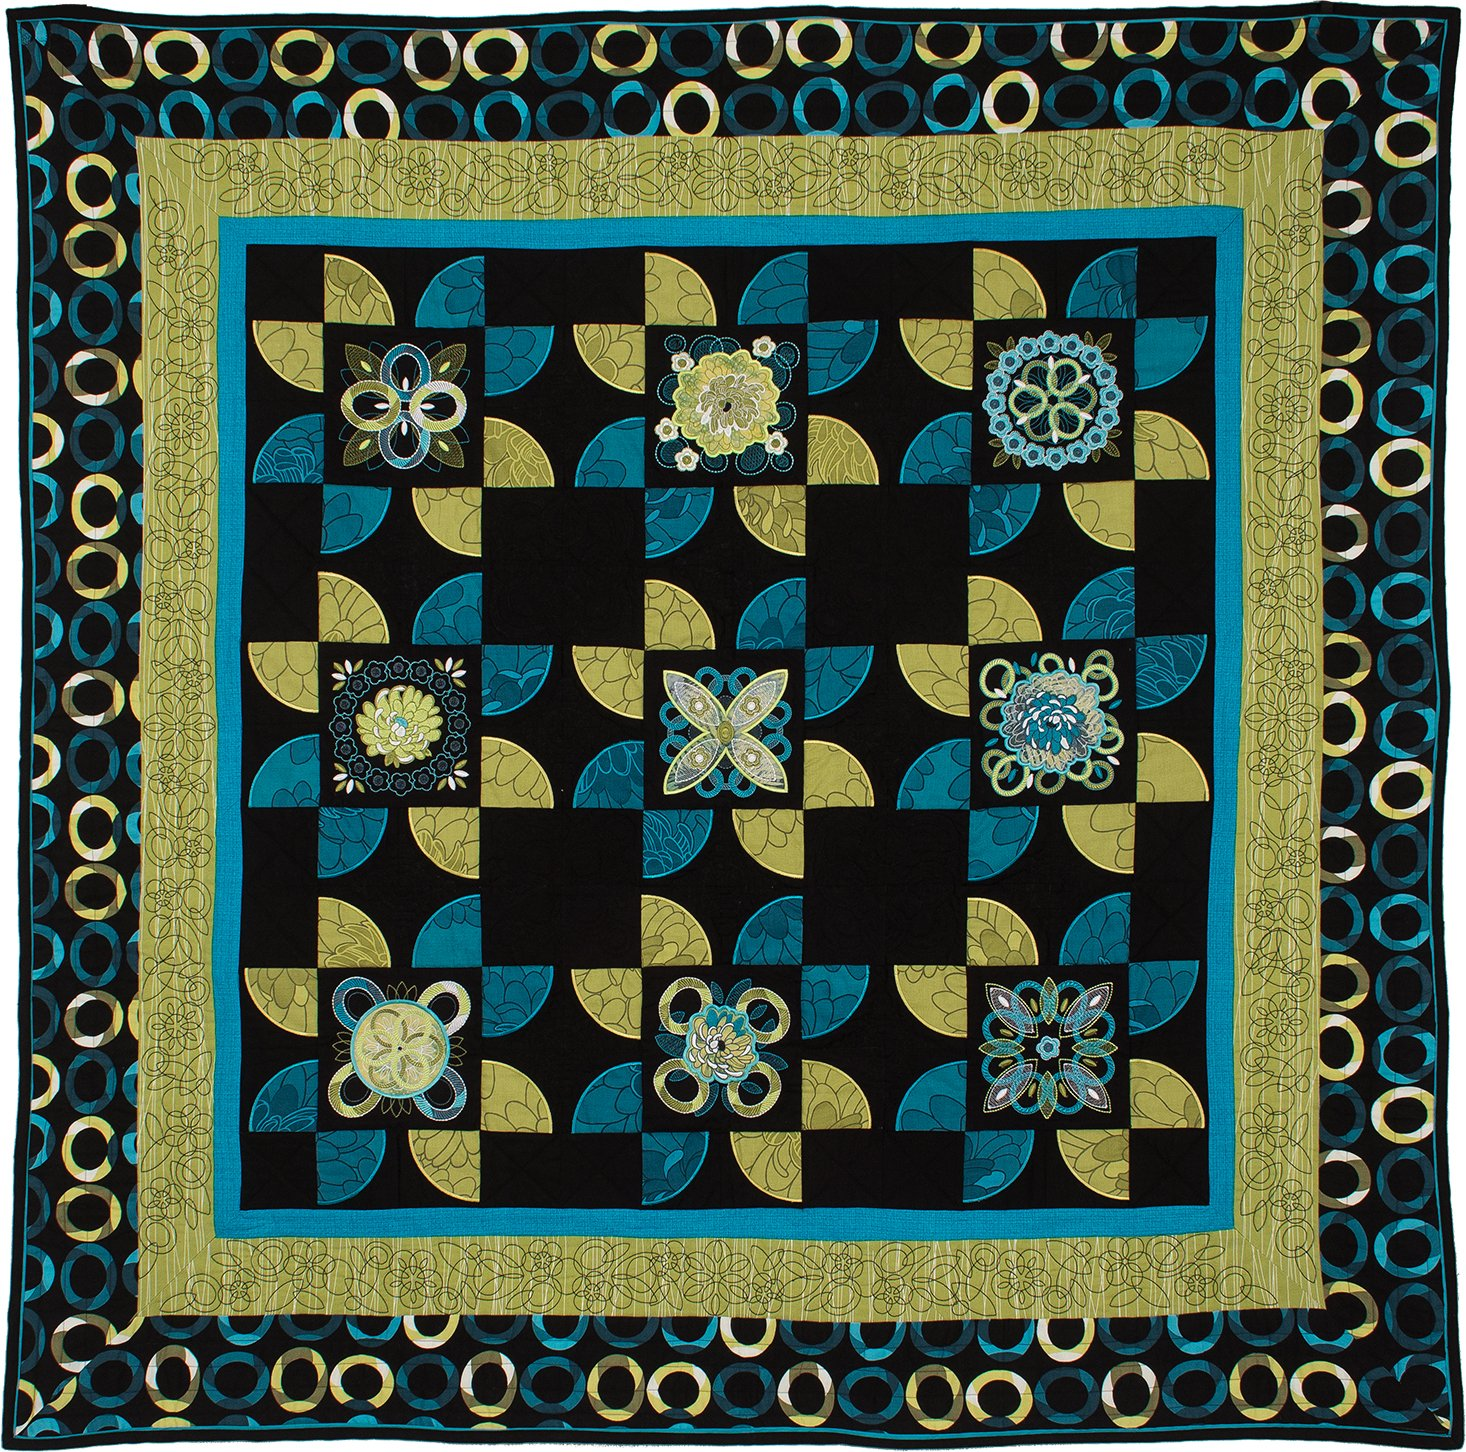 Oesd Embroidery Quilt Bom Fresh Bloom Class 2